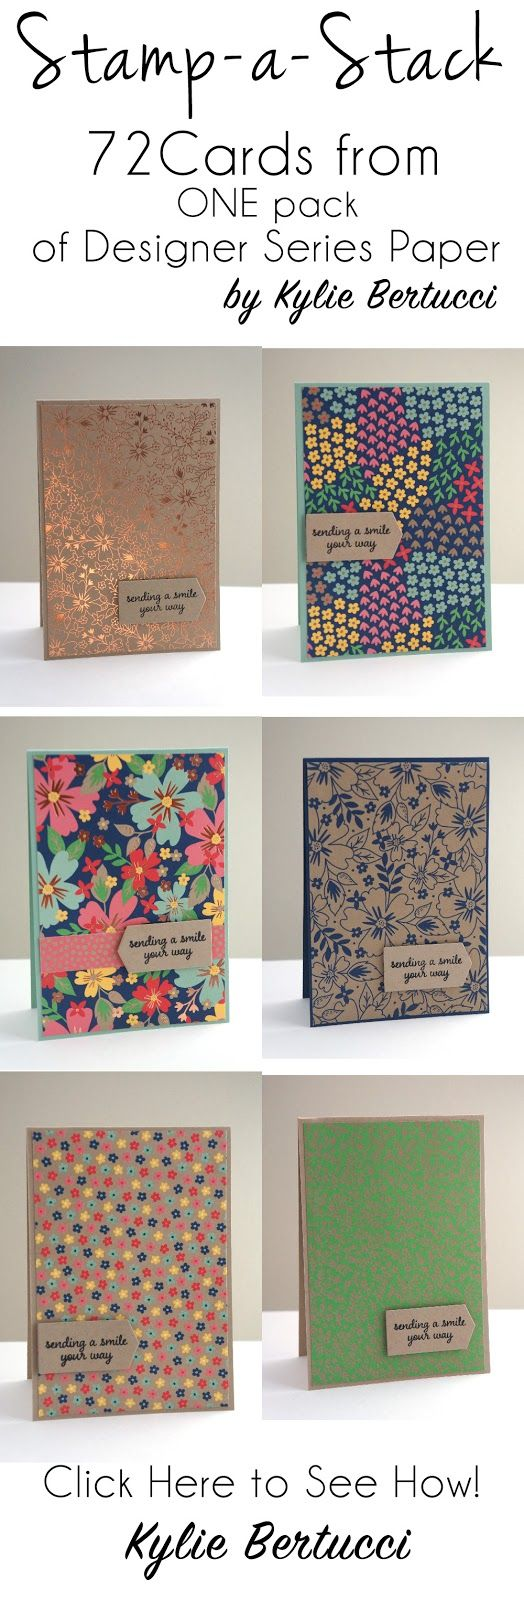 Stampin' Up! Australia: Kylie Bertucci Independent Demonstrator: Stamp a Stack with Affectionately Yours